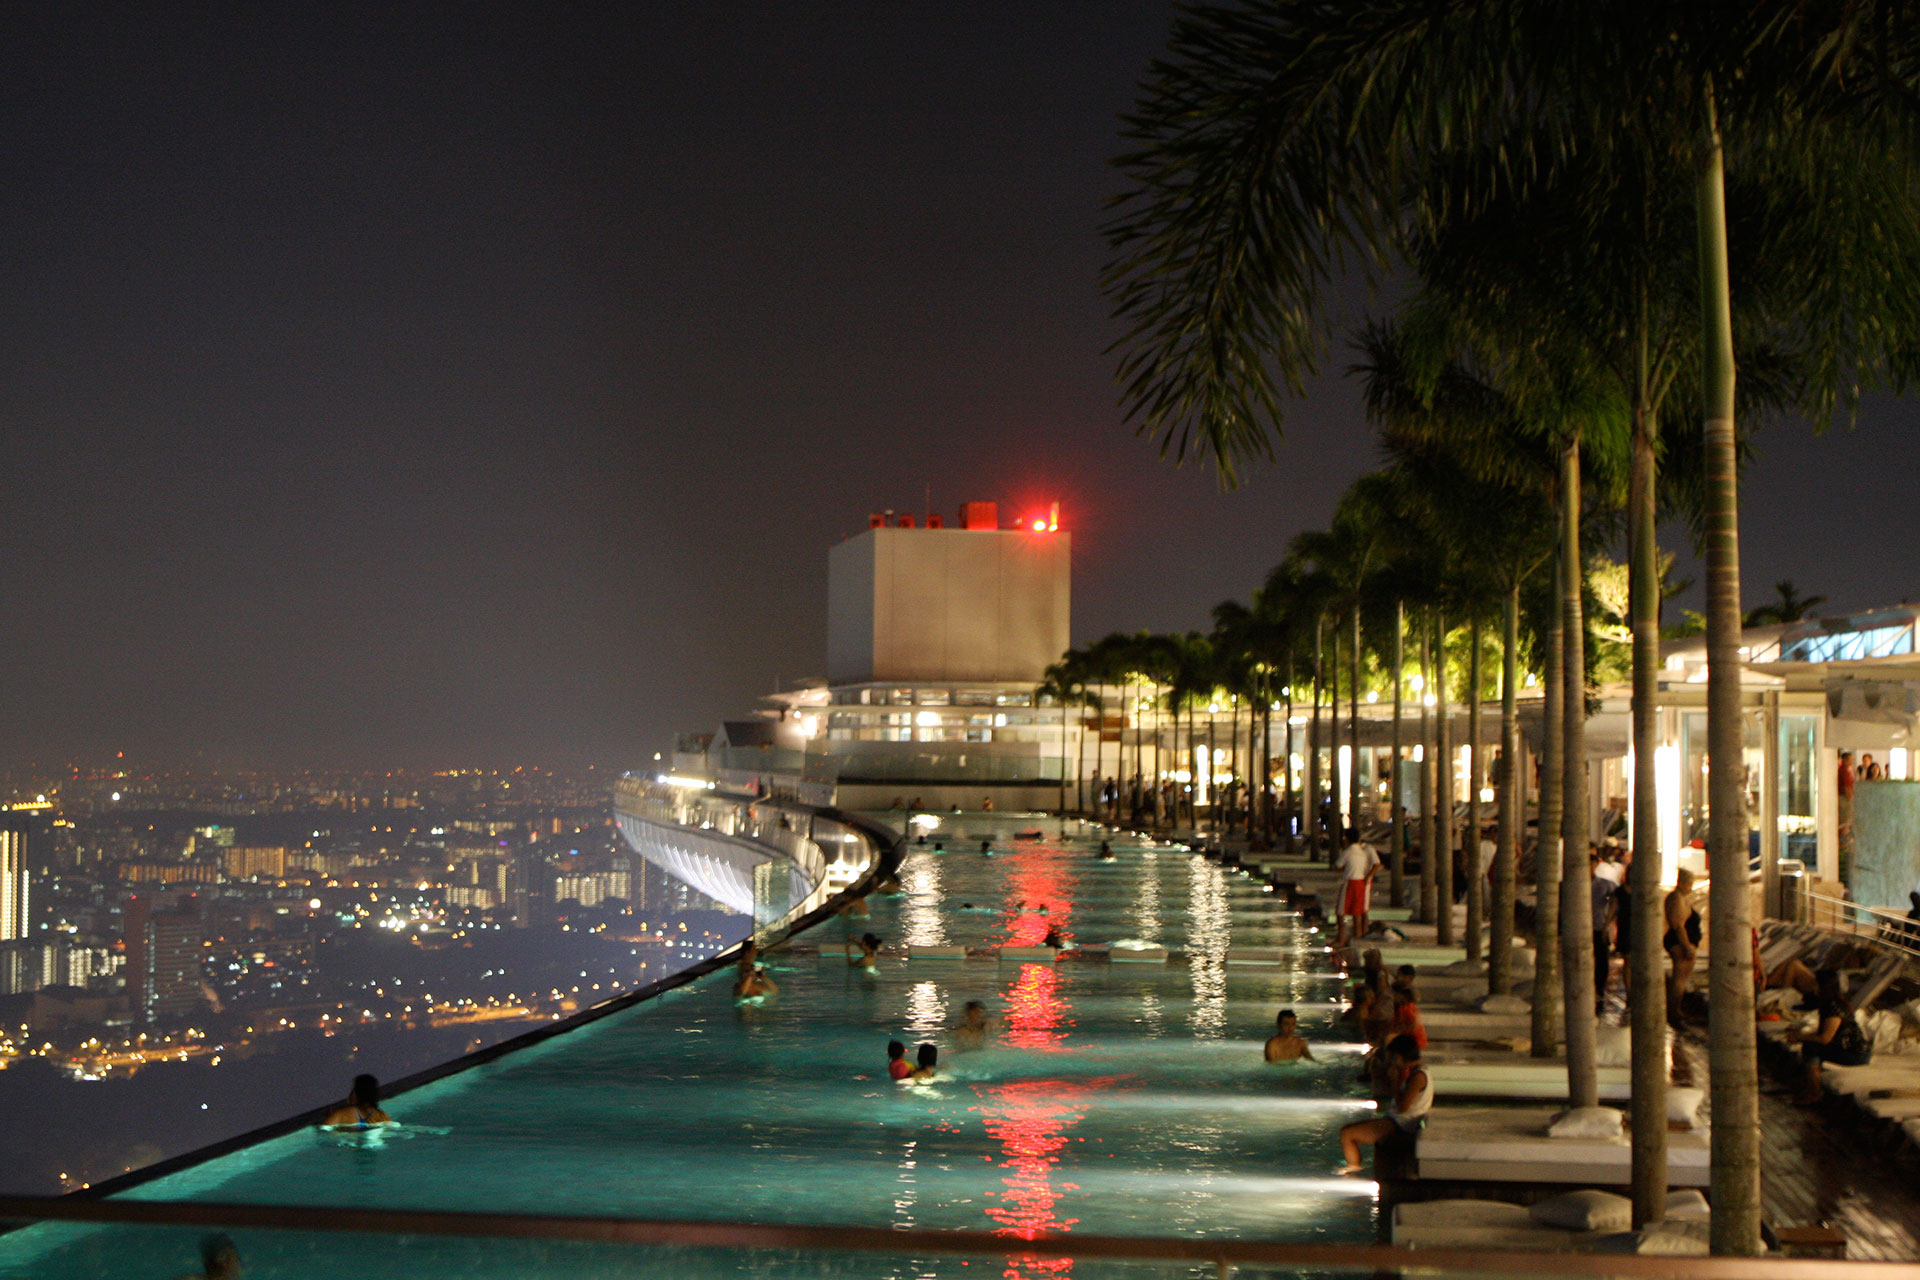 Infinity Pool of Marina Bay Sands, Singapore